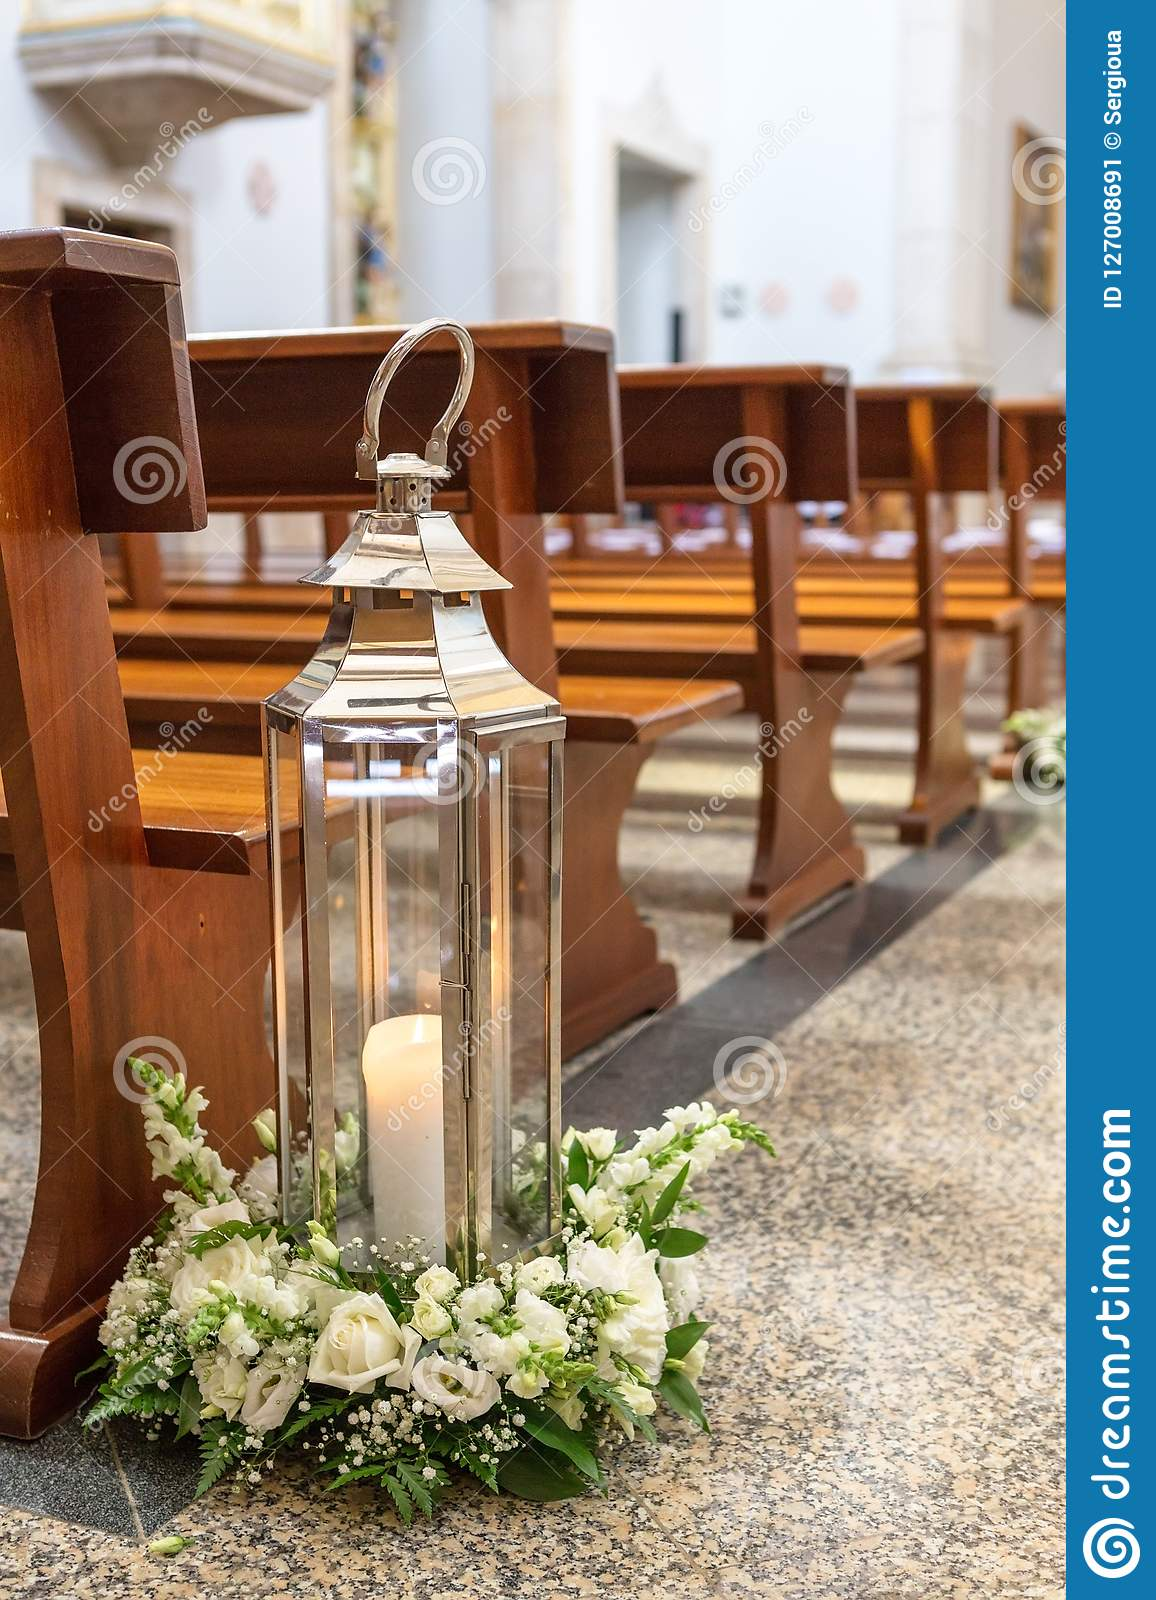 Wedding Decorations In The Church Before The Ceremony Stock